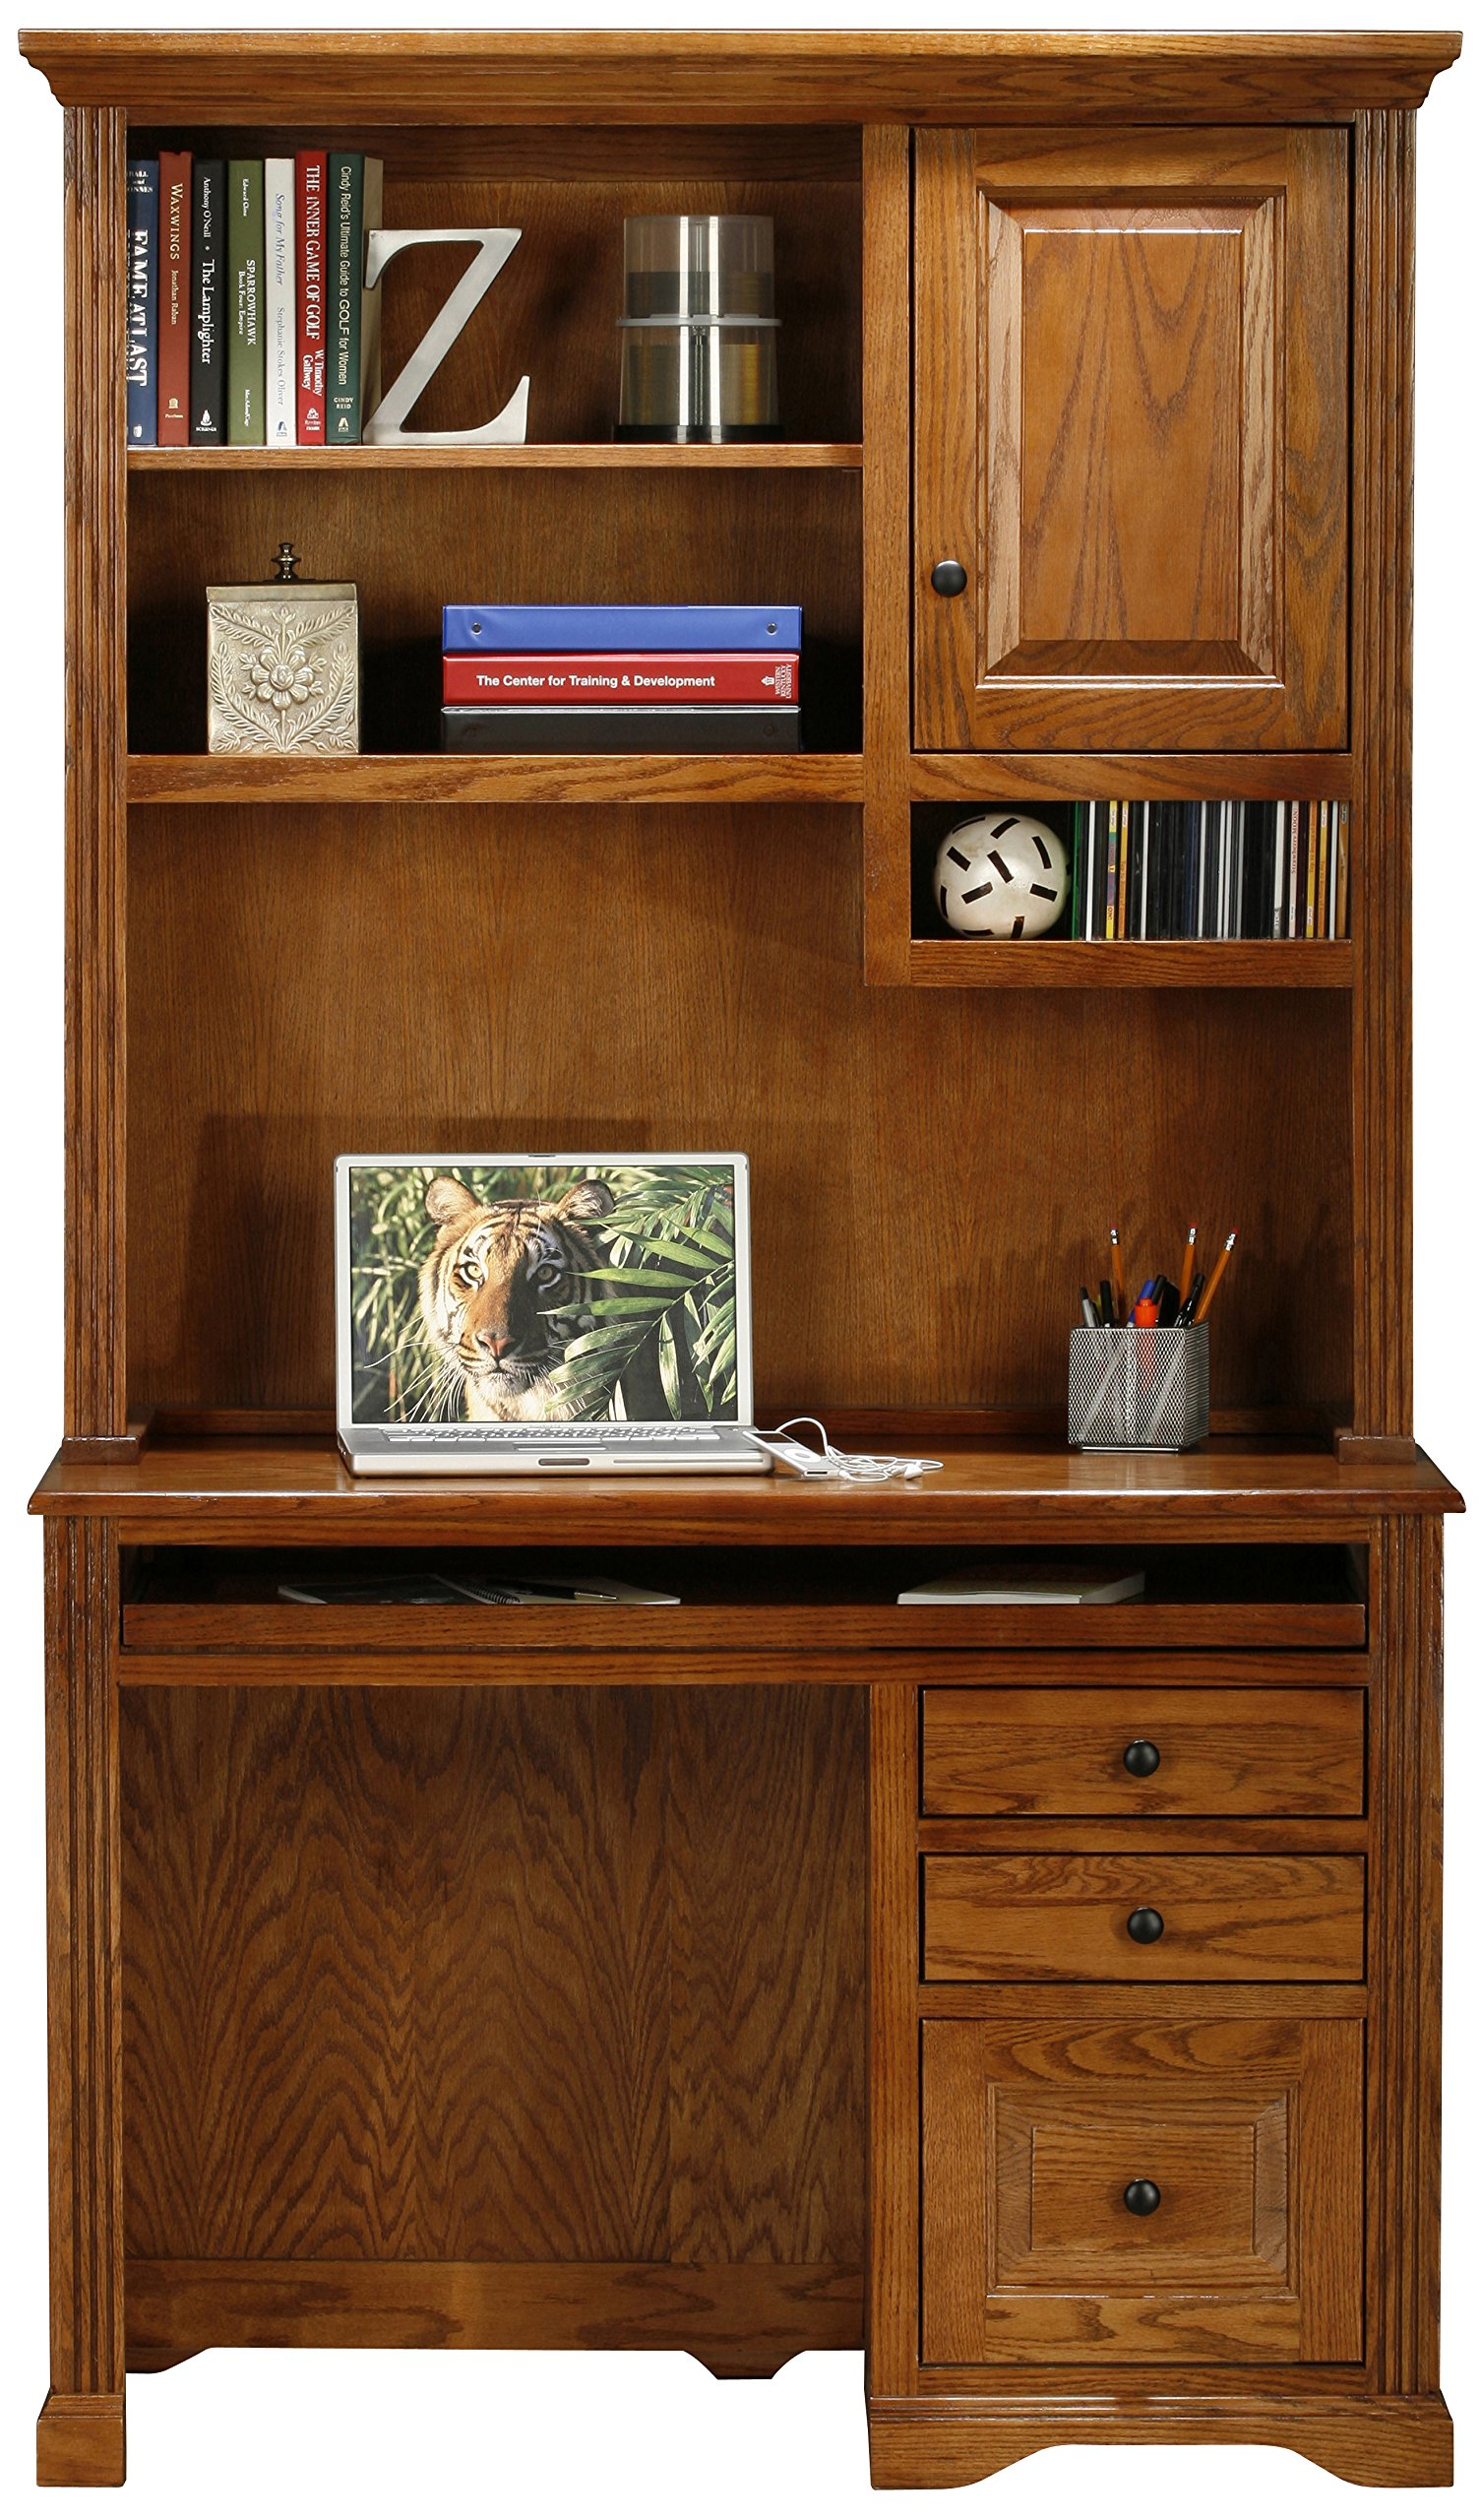 Eagle Oak Ridge Tall Single Pedestal Desk Hutch with Door, Light Oak Finish